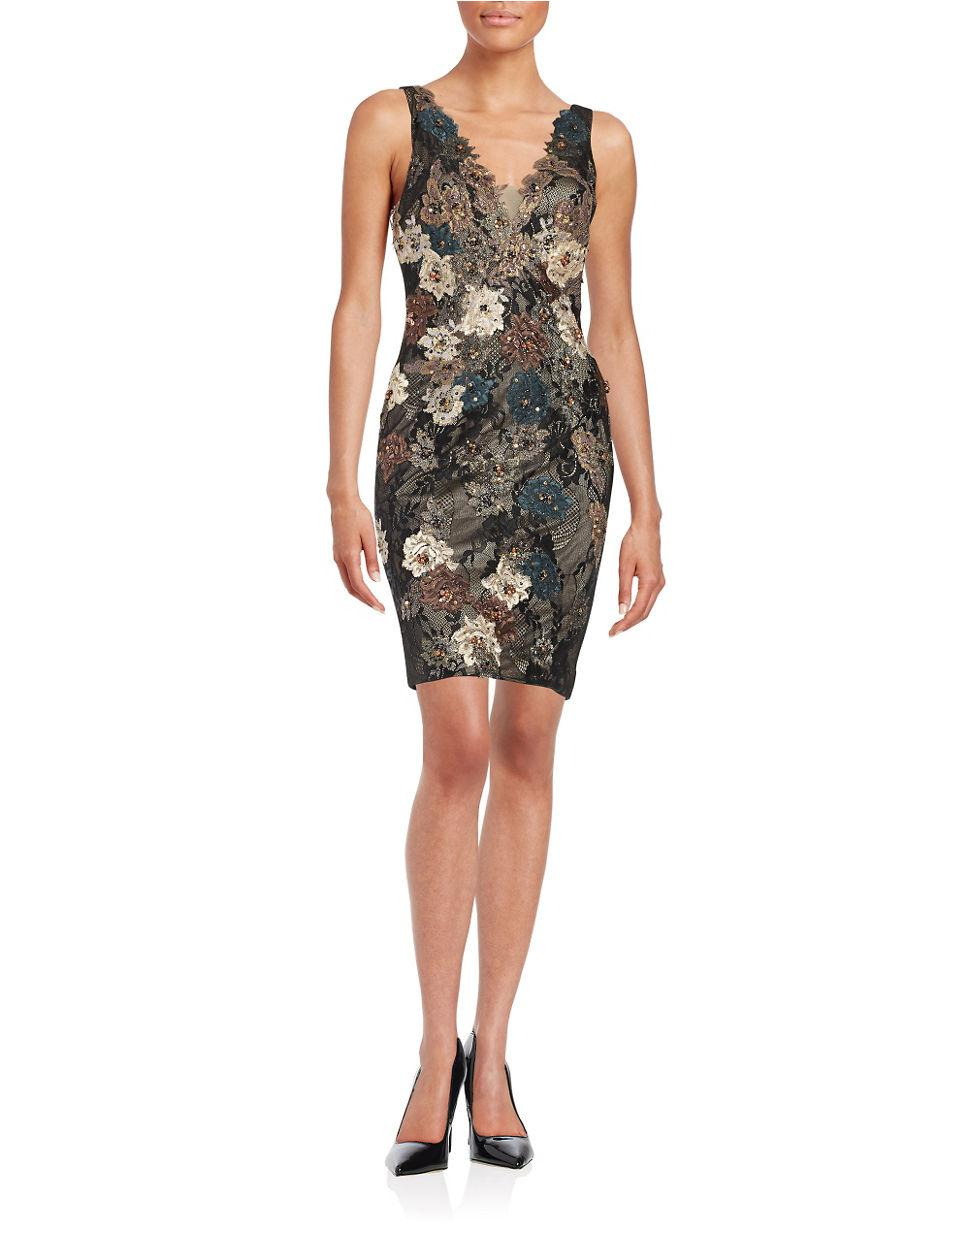 Julian Joyce By Mandalay Floral Lace Sequined Dress In